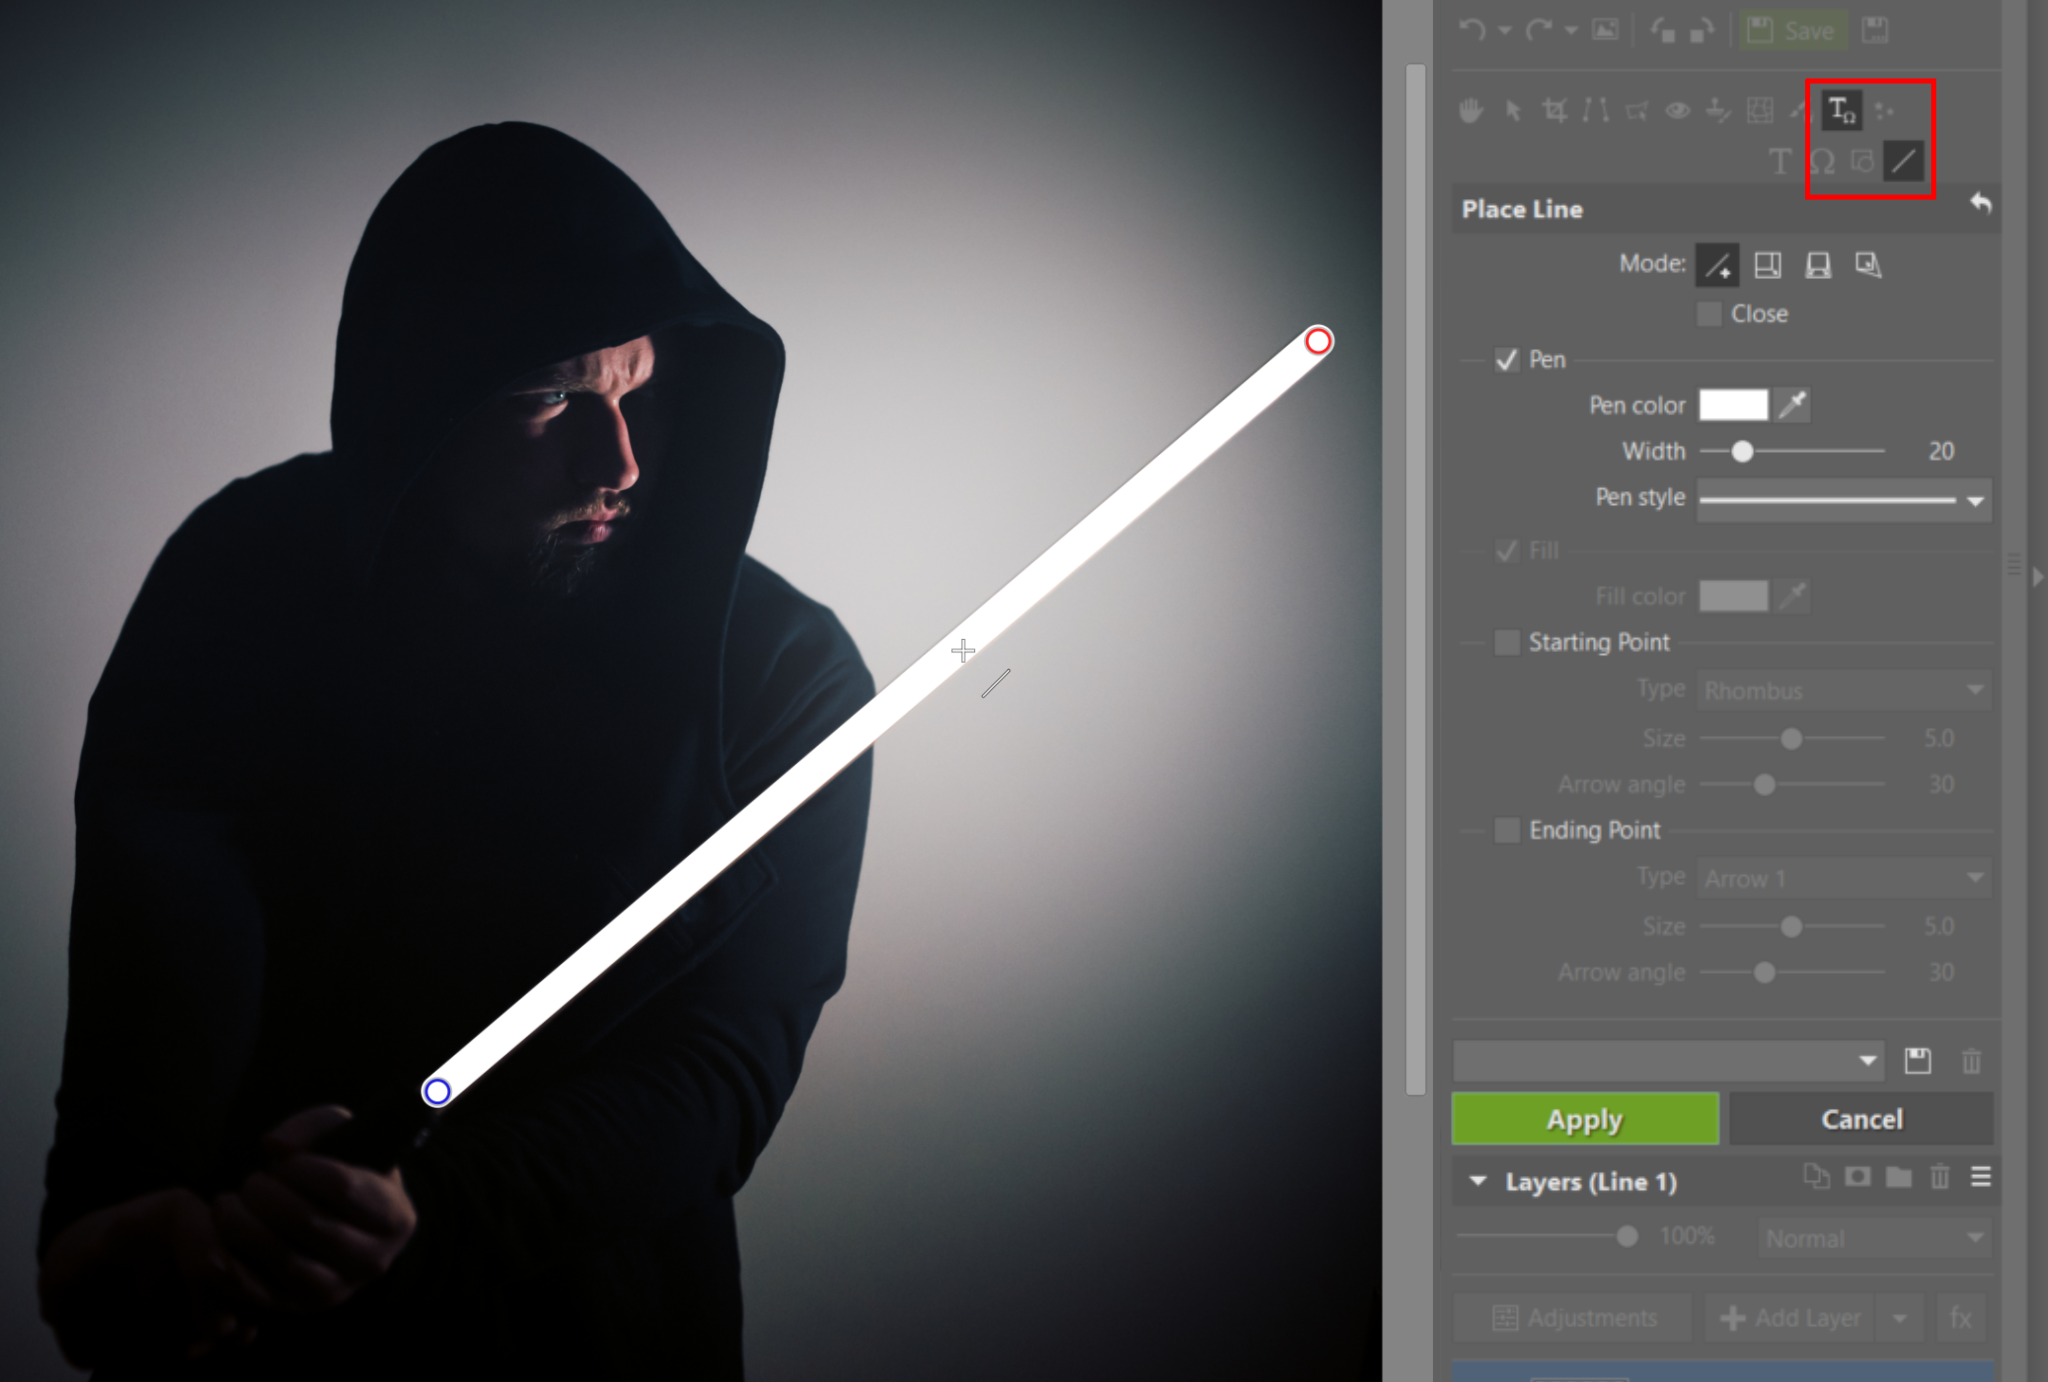 Create Your Own Lightsaber Photo - line